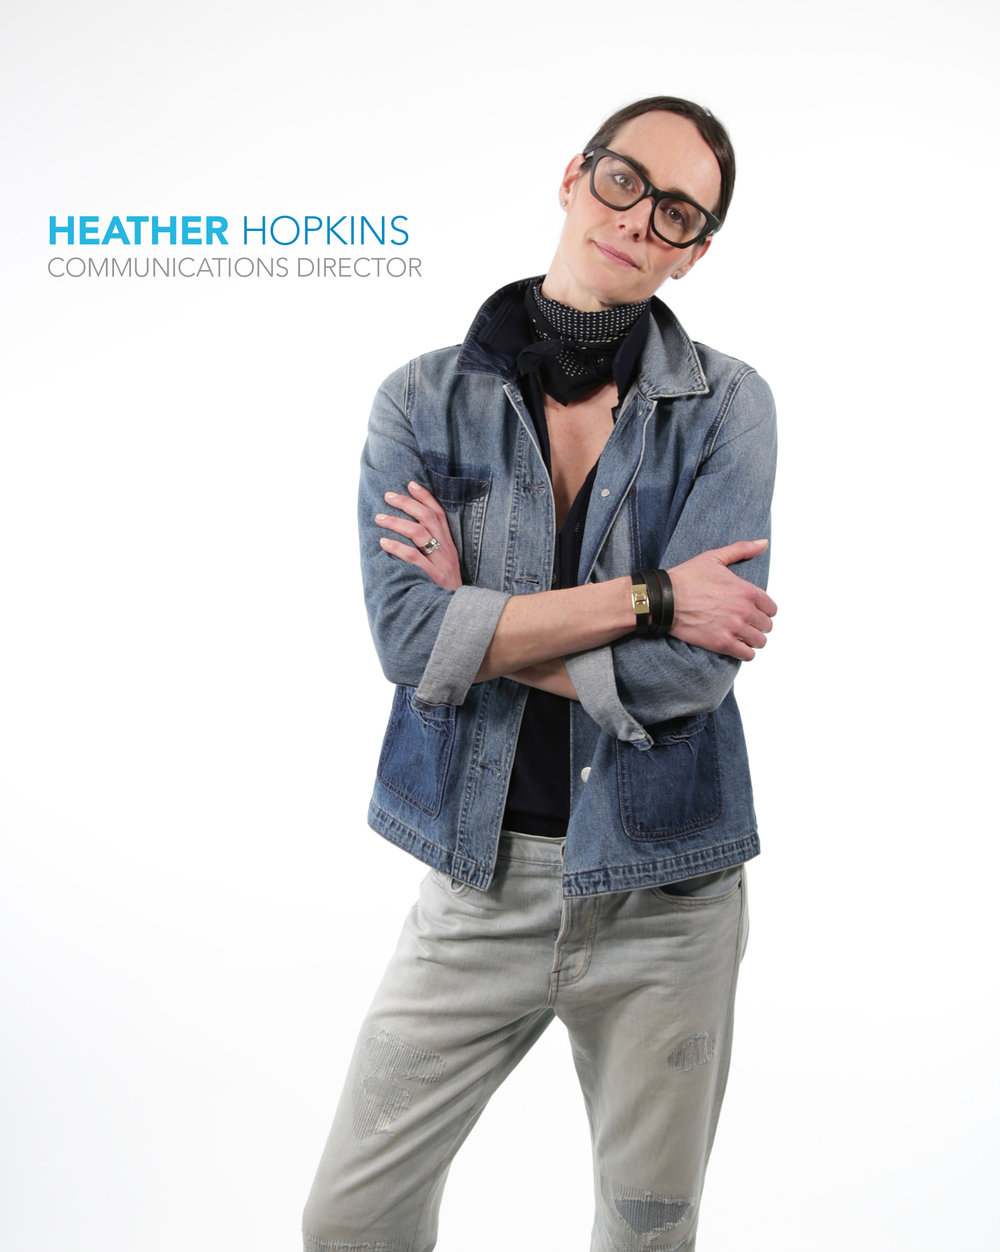 Heather Hopkins Communications Director